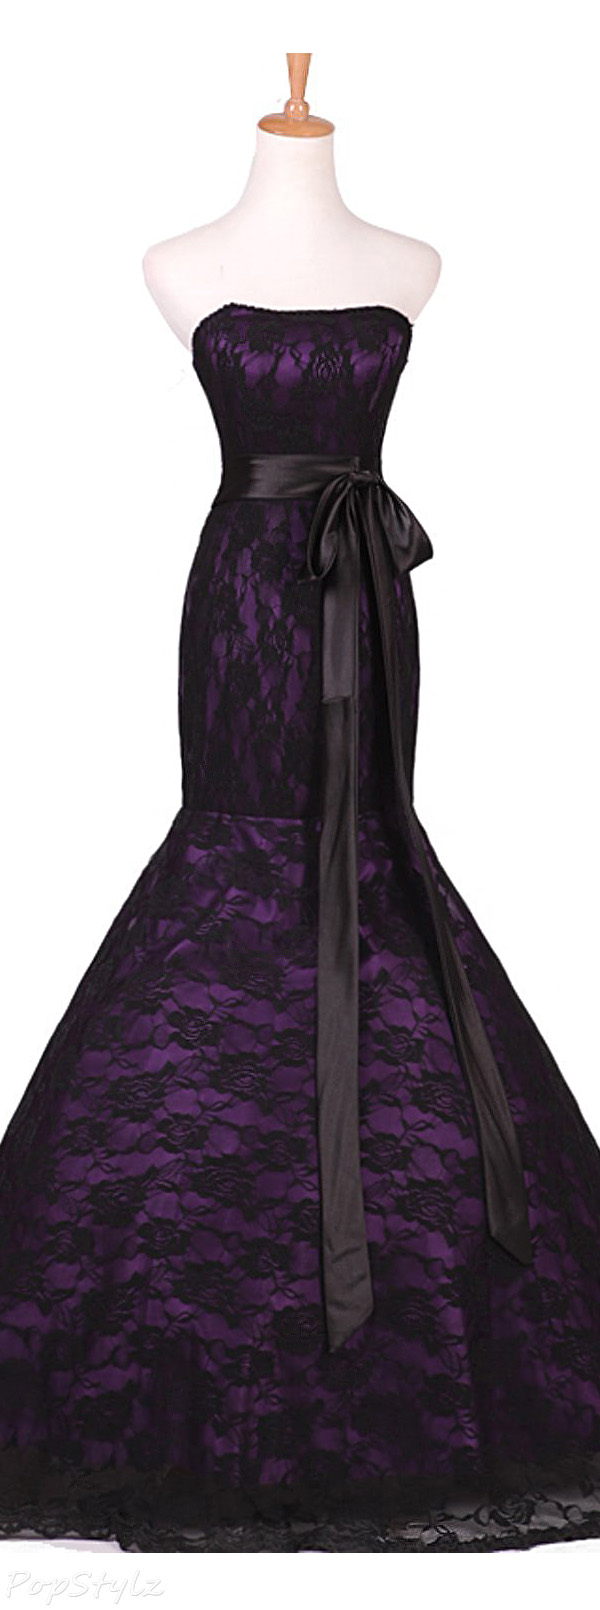 Sunvary Purple Satin & Black Lace Mermaid Gown